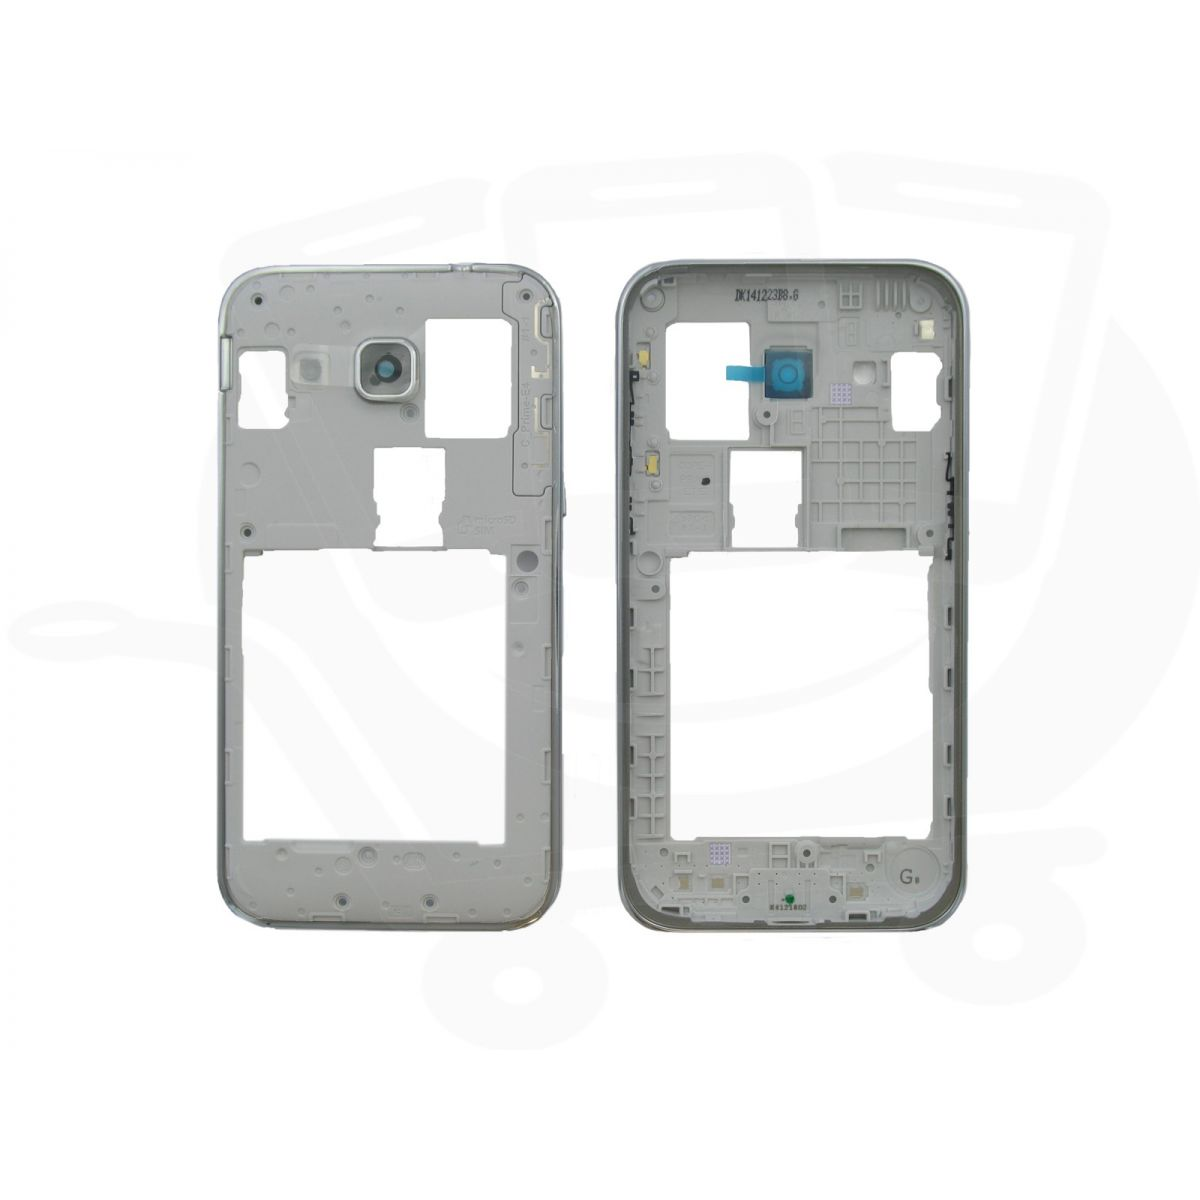 Aro Carcaca Frame Lateral Chassi Samsung Sm-G360 Win 2 Duos Branco